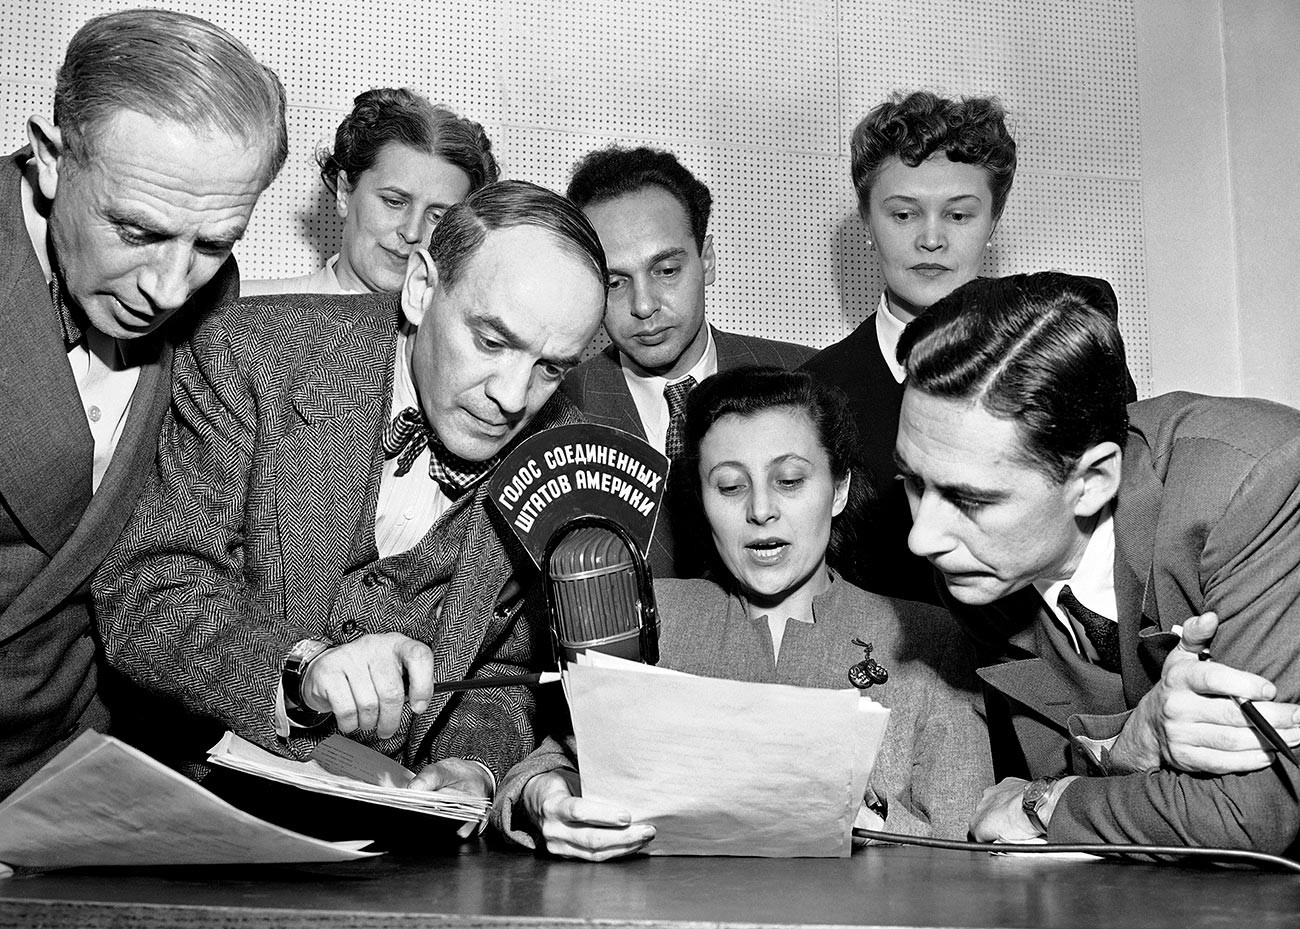 A group of State Department announcers huddle around the microphone after the initial shortwave broadcast in Russian to Russia from New York City on Feb. 17, 1947.